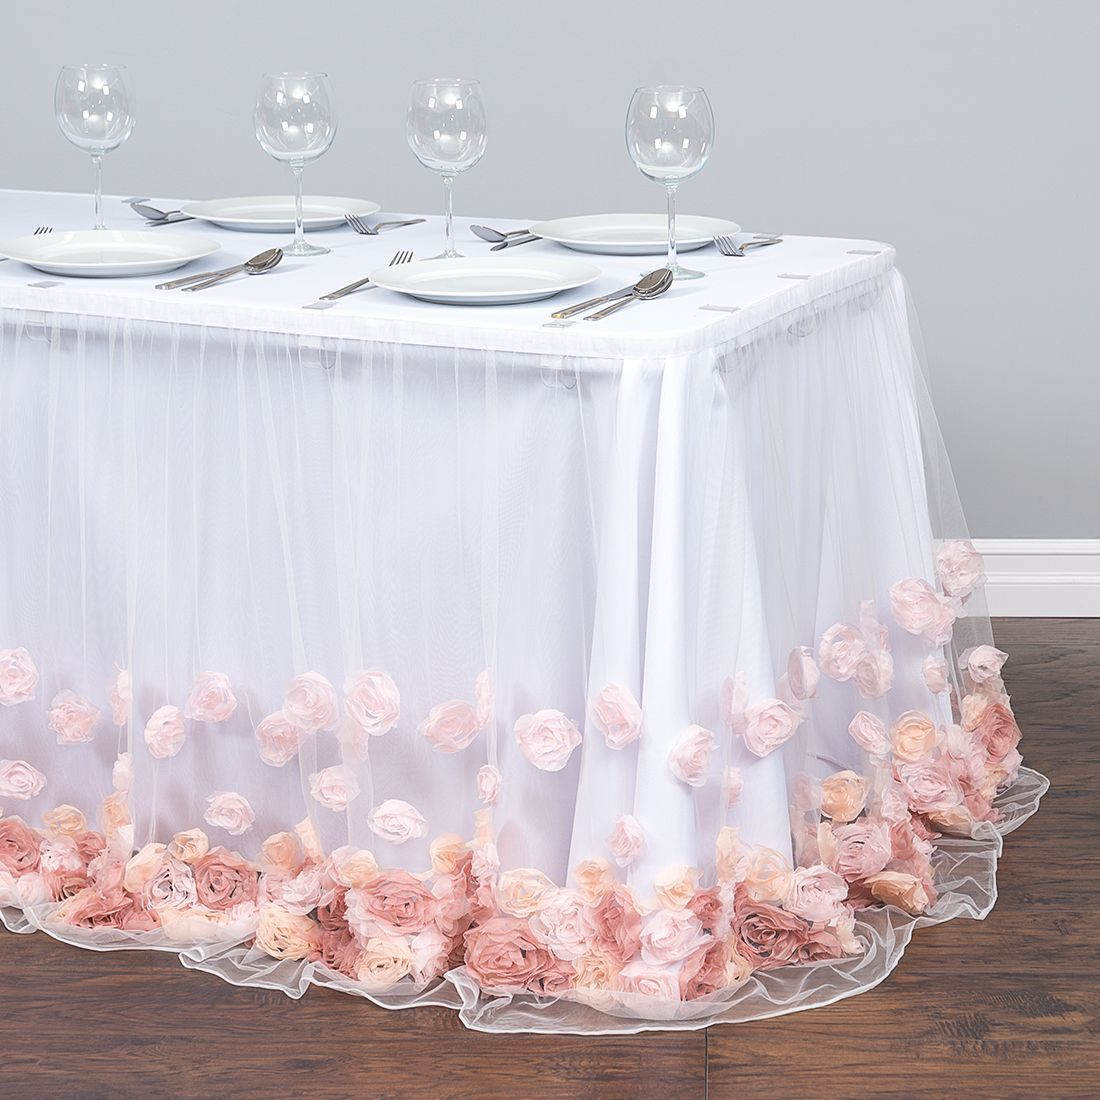 14 Ft Curly Willow Table Skirt Light Pink Rose Gold Table Baby